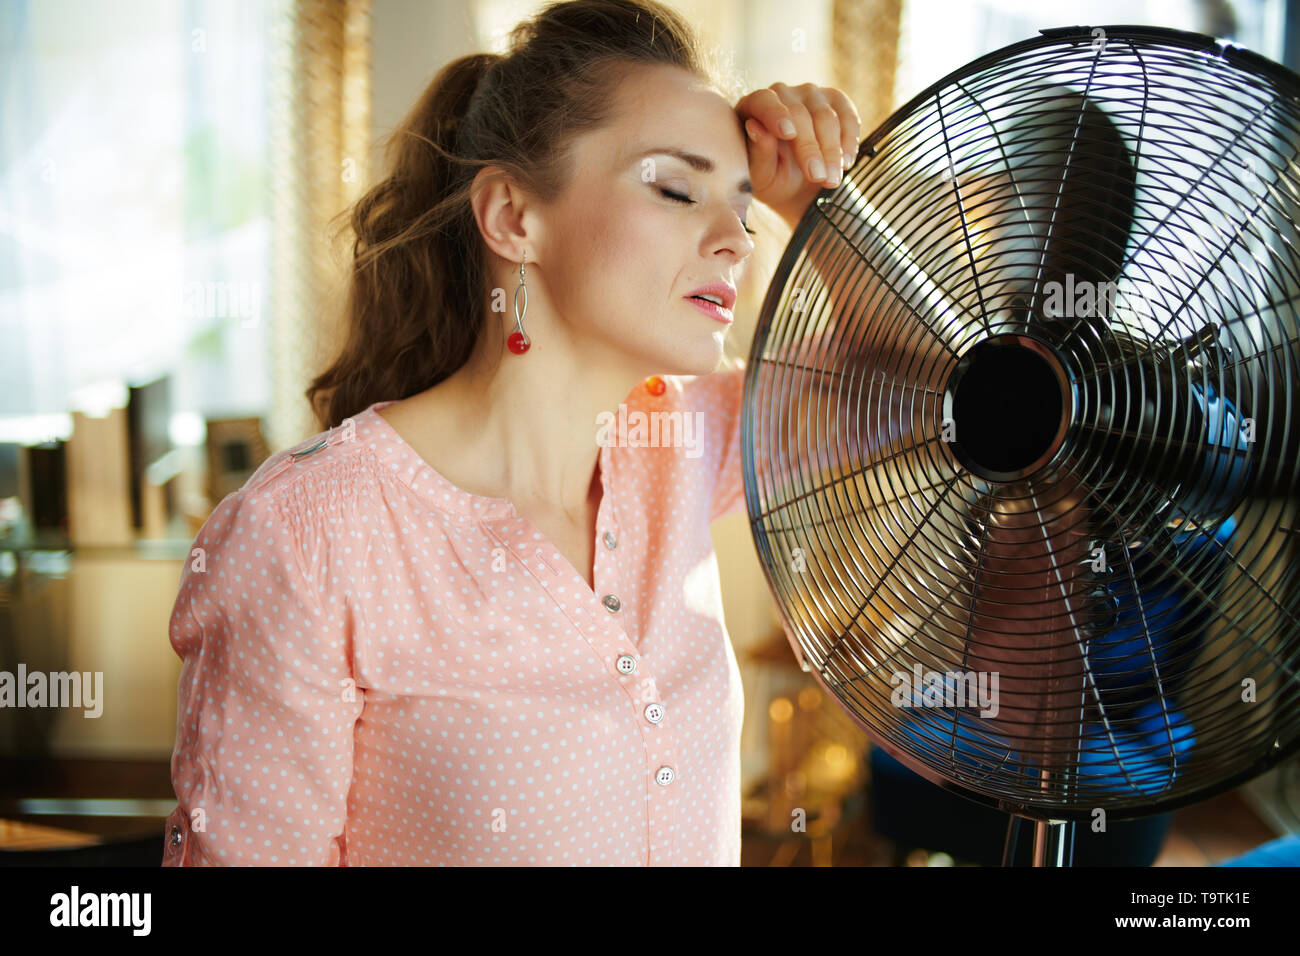 relaxed modern housewife in the modern house in sunny hot summer day enjoying fresh air in the front of working fan suffering from summer heat. - Stock Image